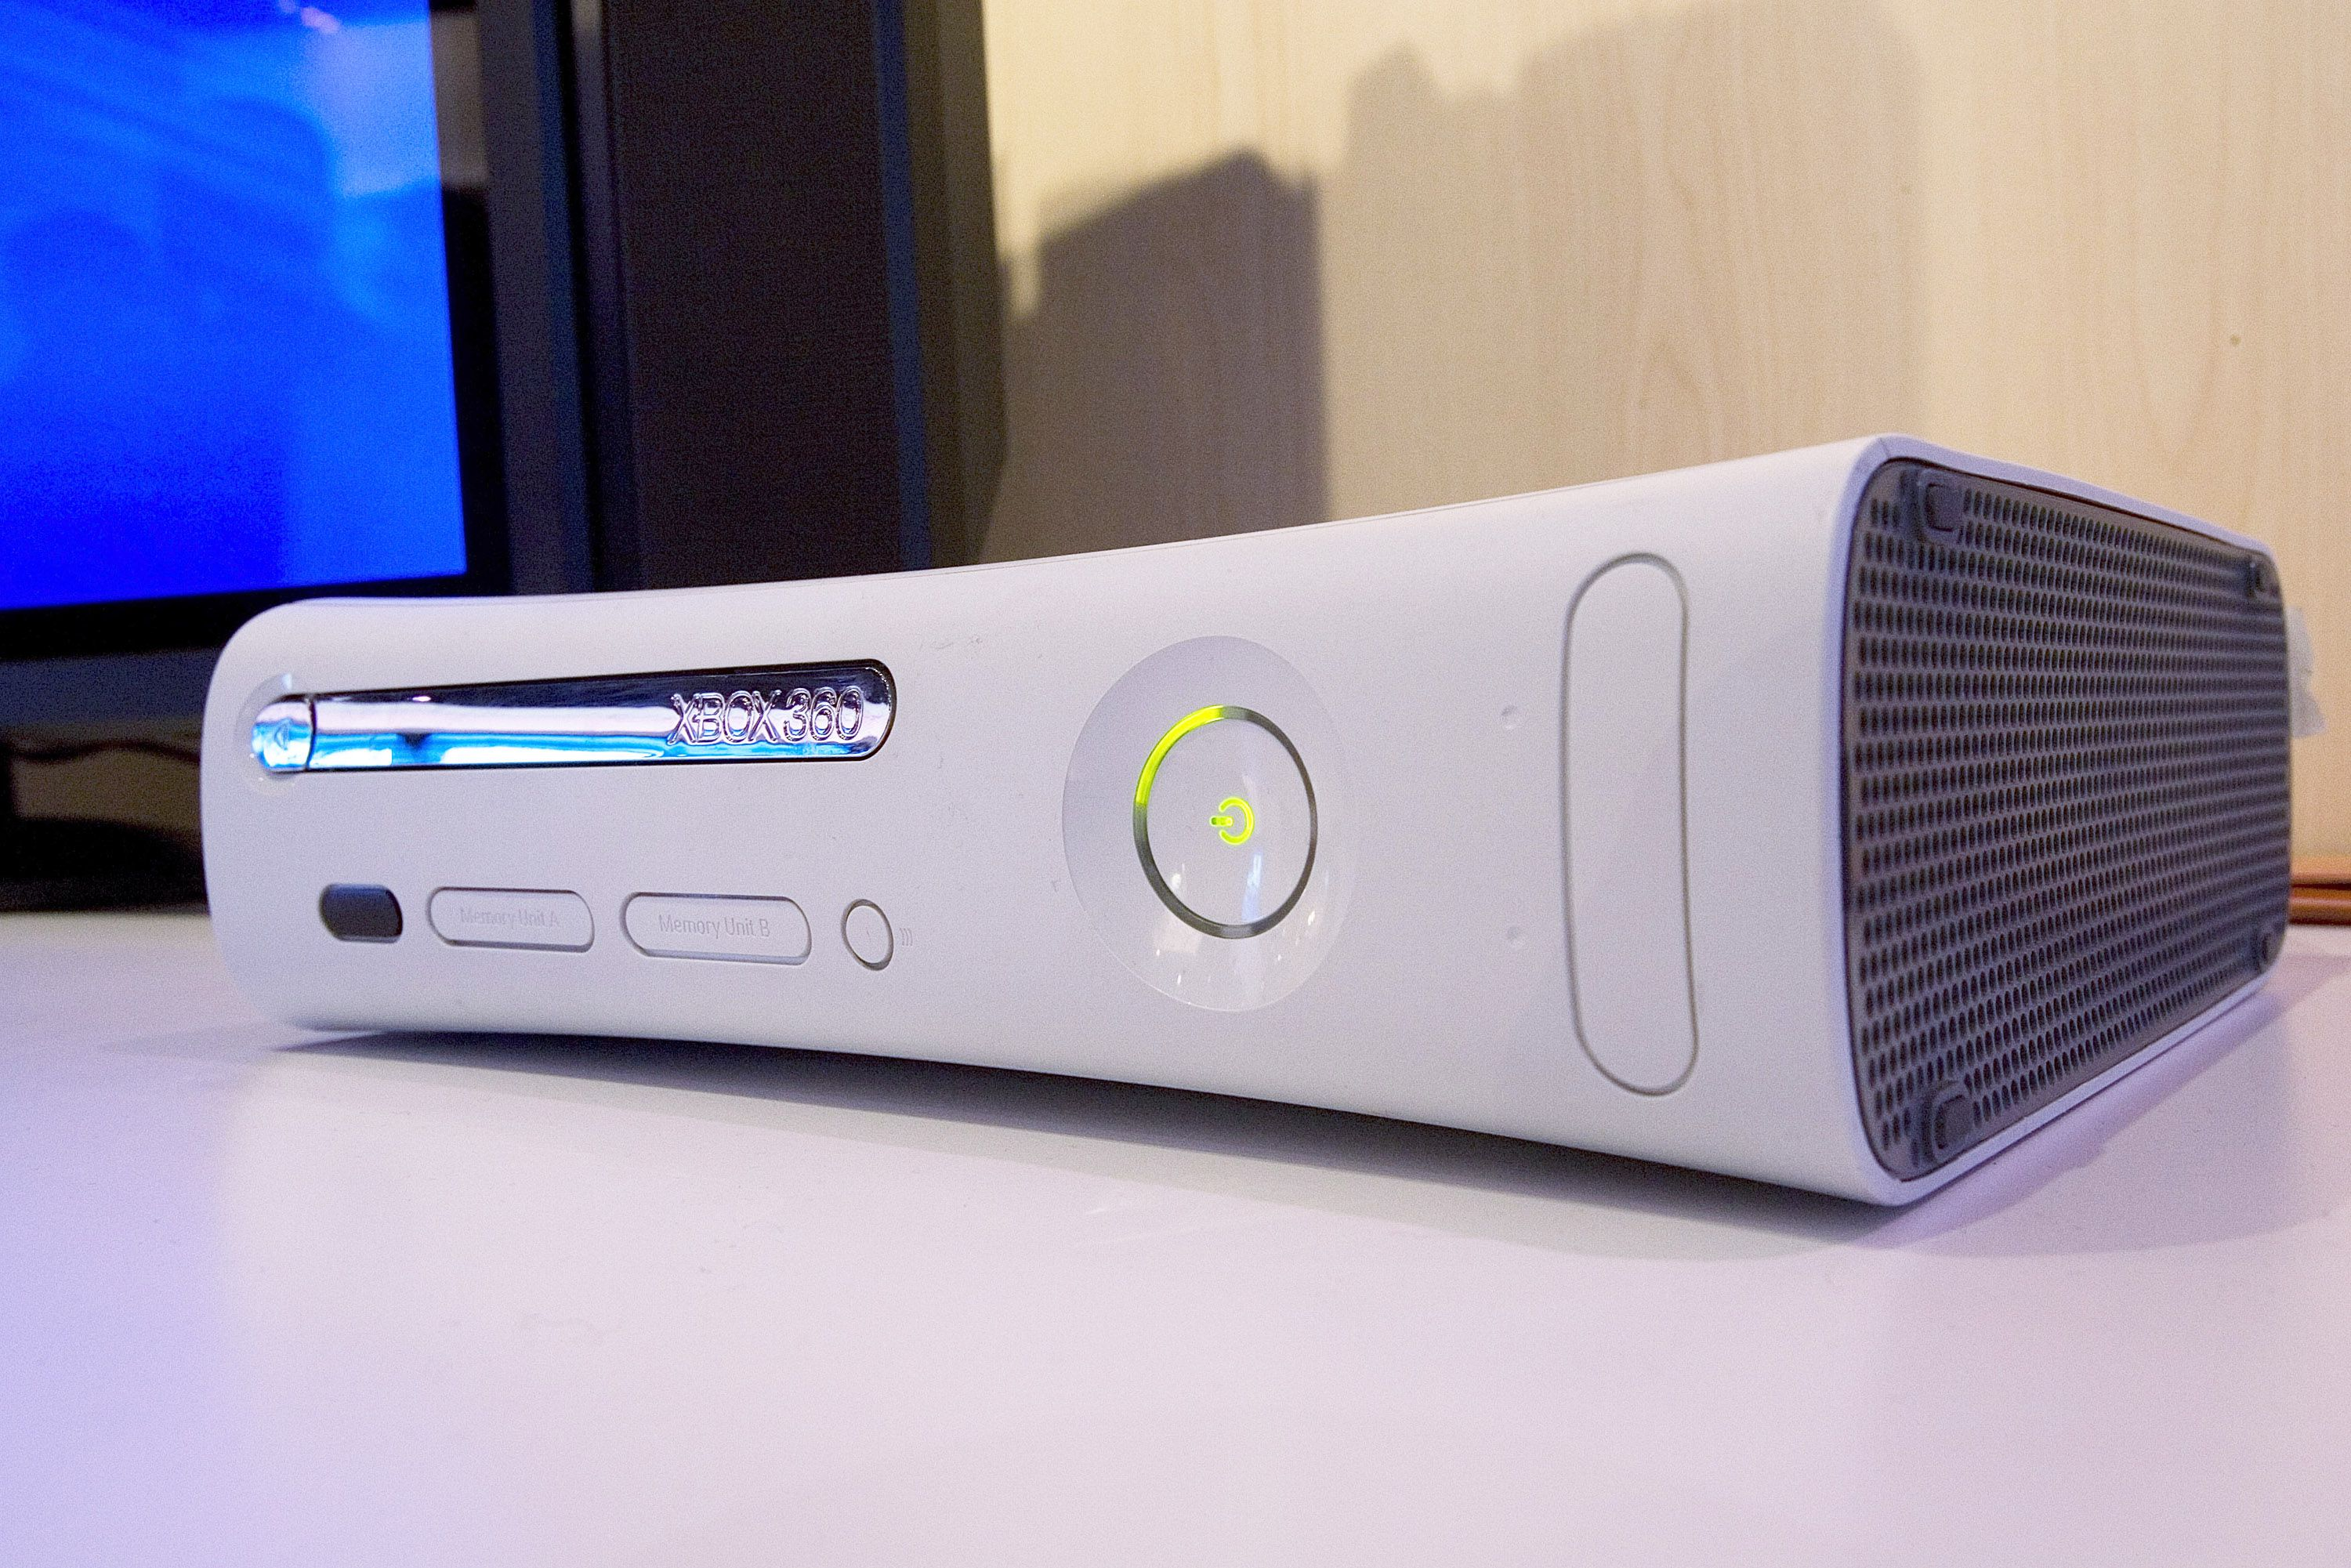 How To Fix Common Xbox 360 Wireless Networking Problems